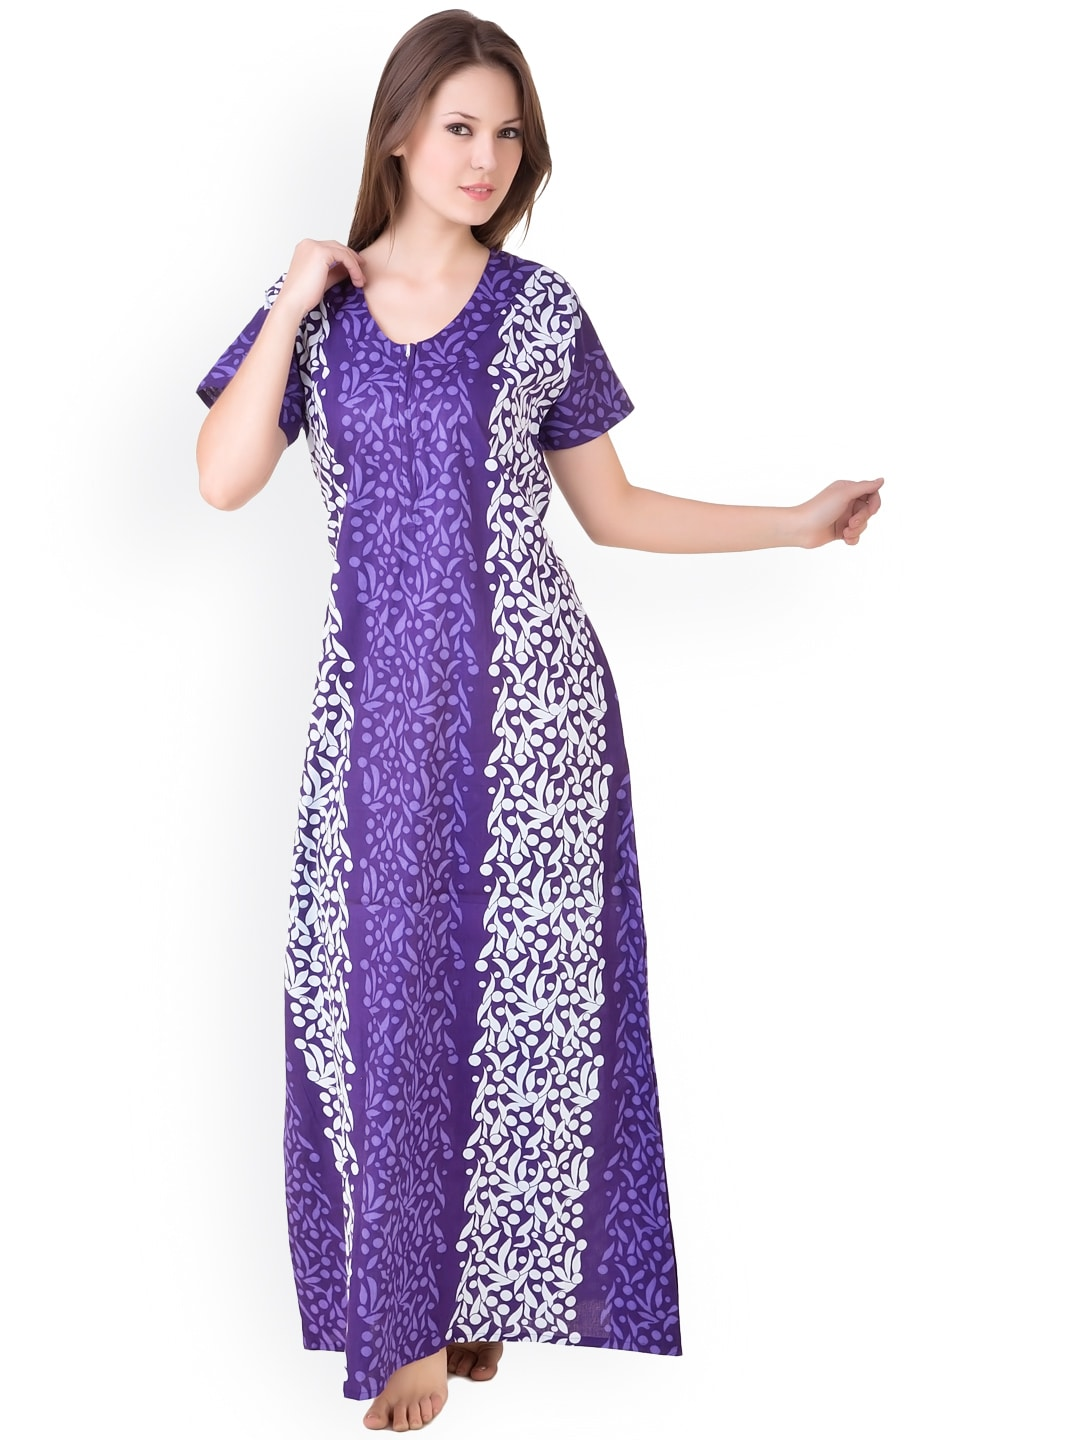 385aeb14b7 Cotton Nightdresses - Buy Cotton Nightdresses Online in India